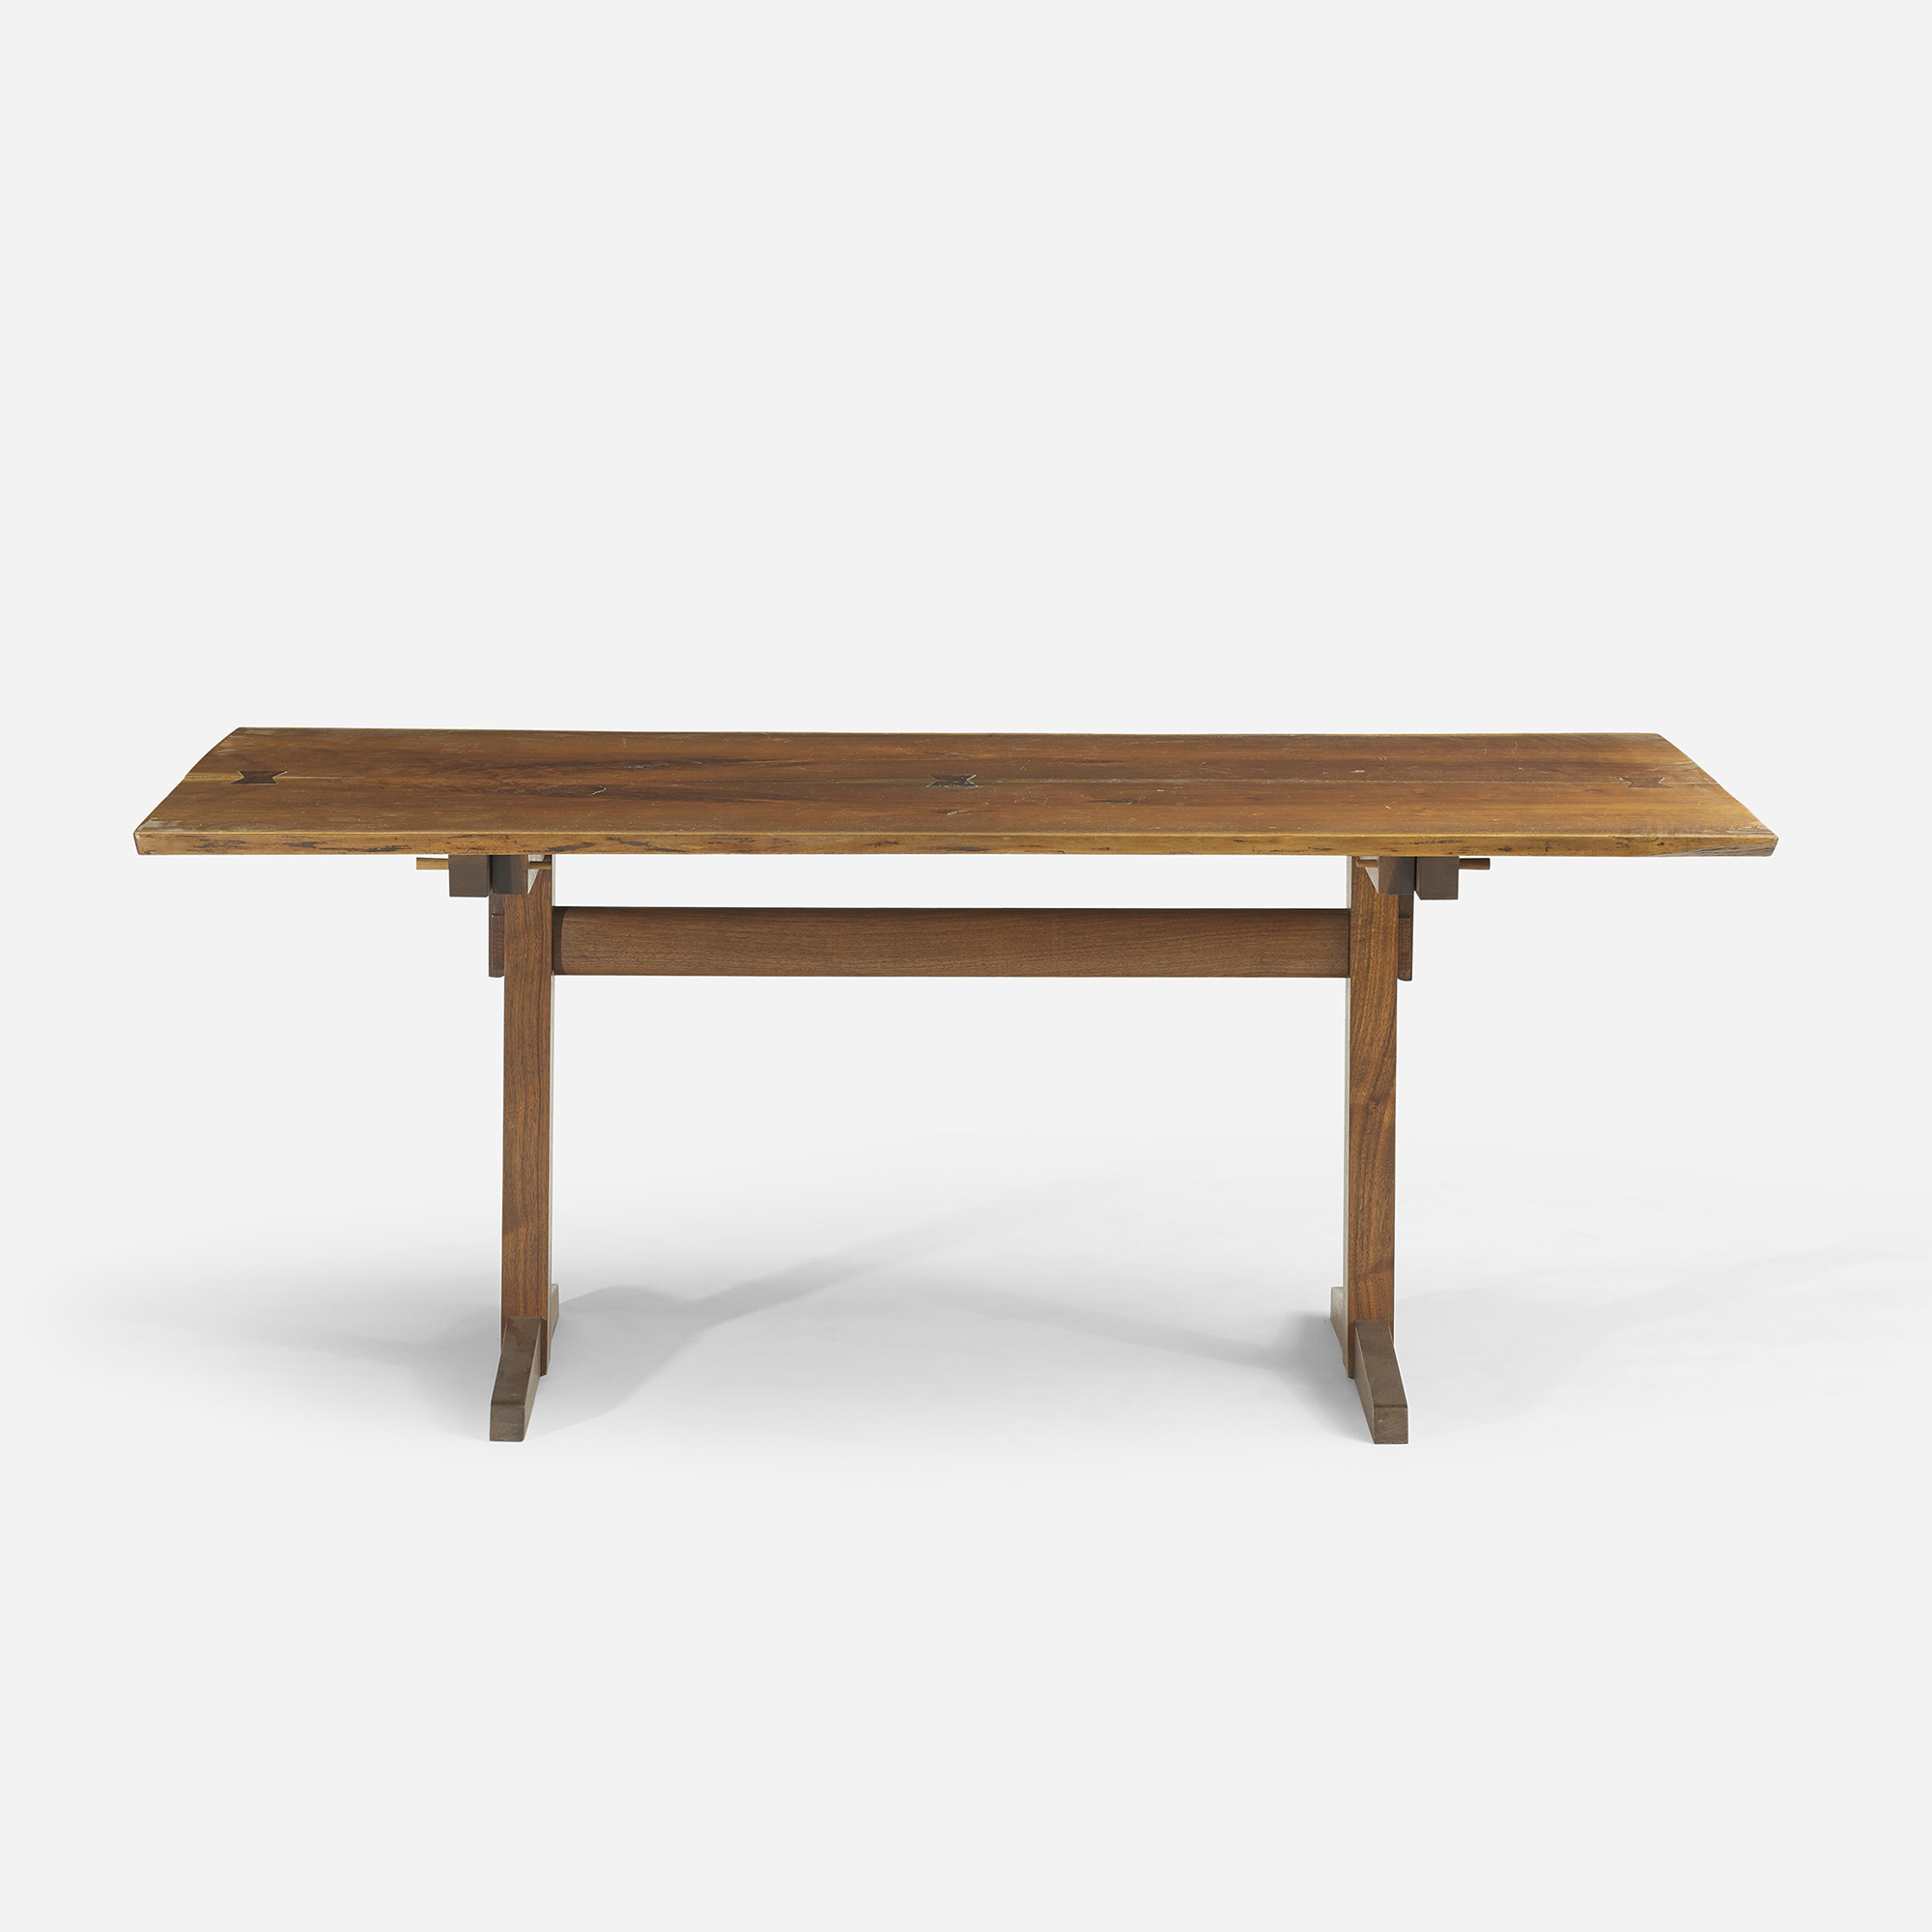 156 George Nakashima Trestle dining table Design 12 June